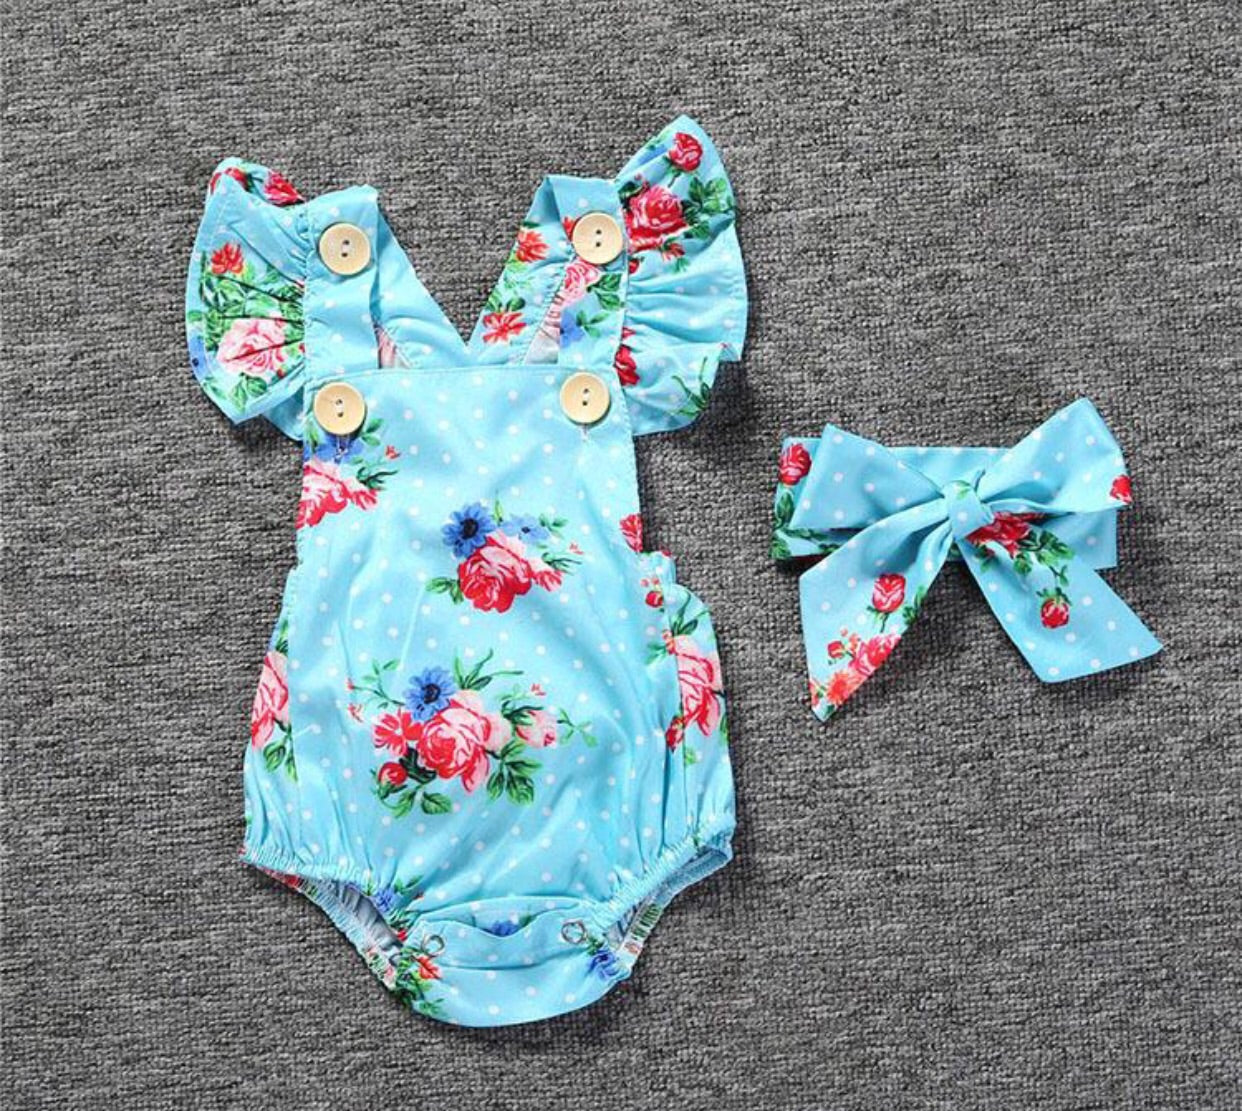 Blue romper with flower patter